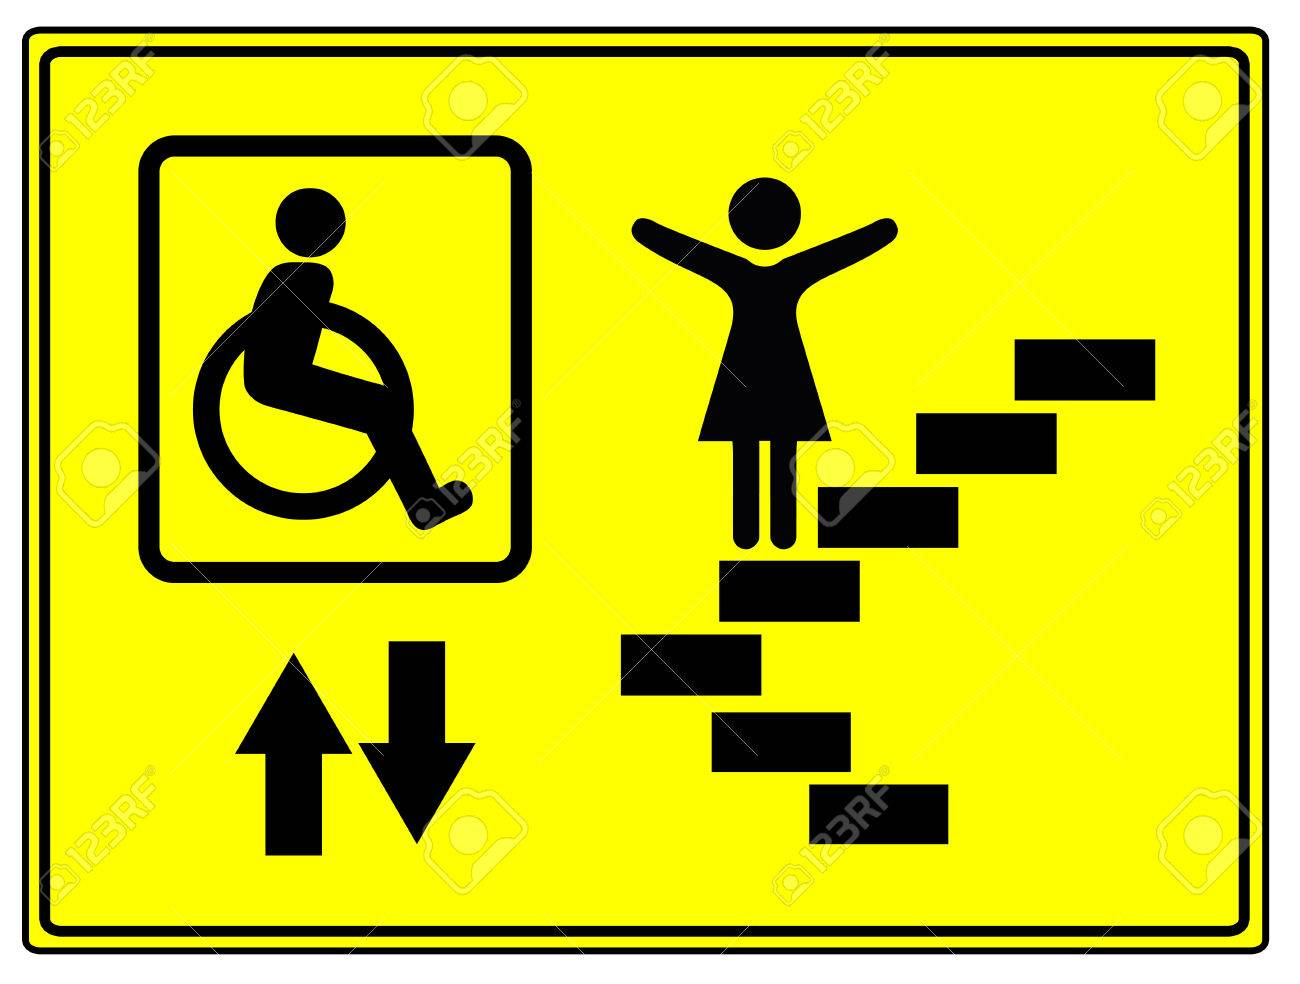 Mobility and inclusion elevator sign for mobility impaired people mobility and inclusion elevator sign for mobility impaired people like wheelchair user stock photo biocorpaavc Image collections